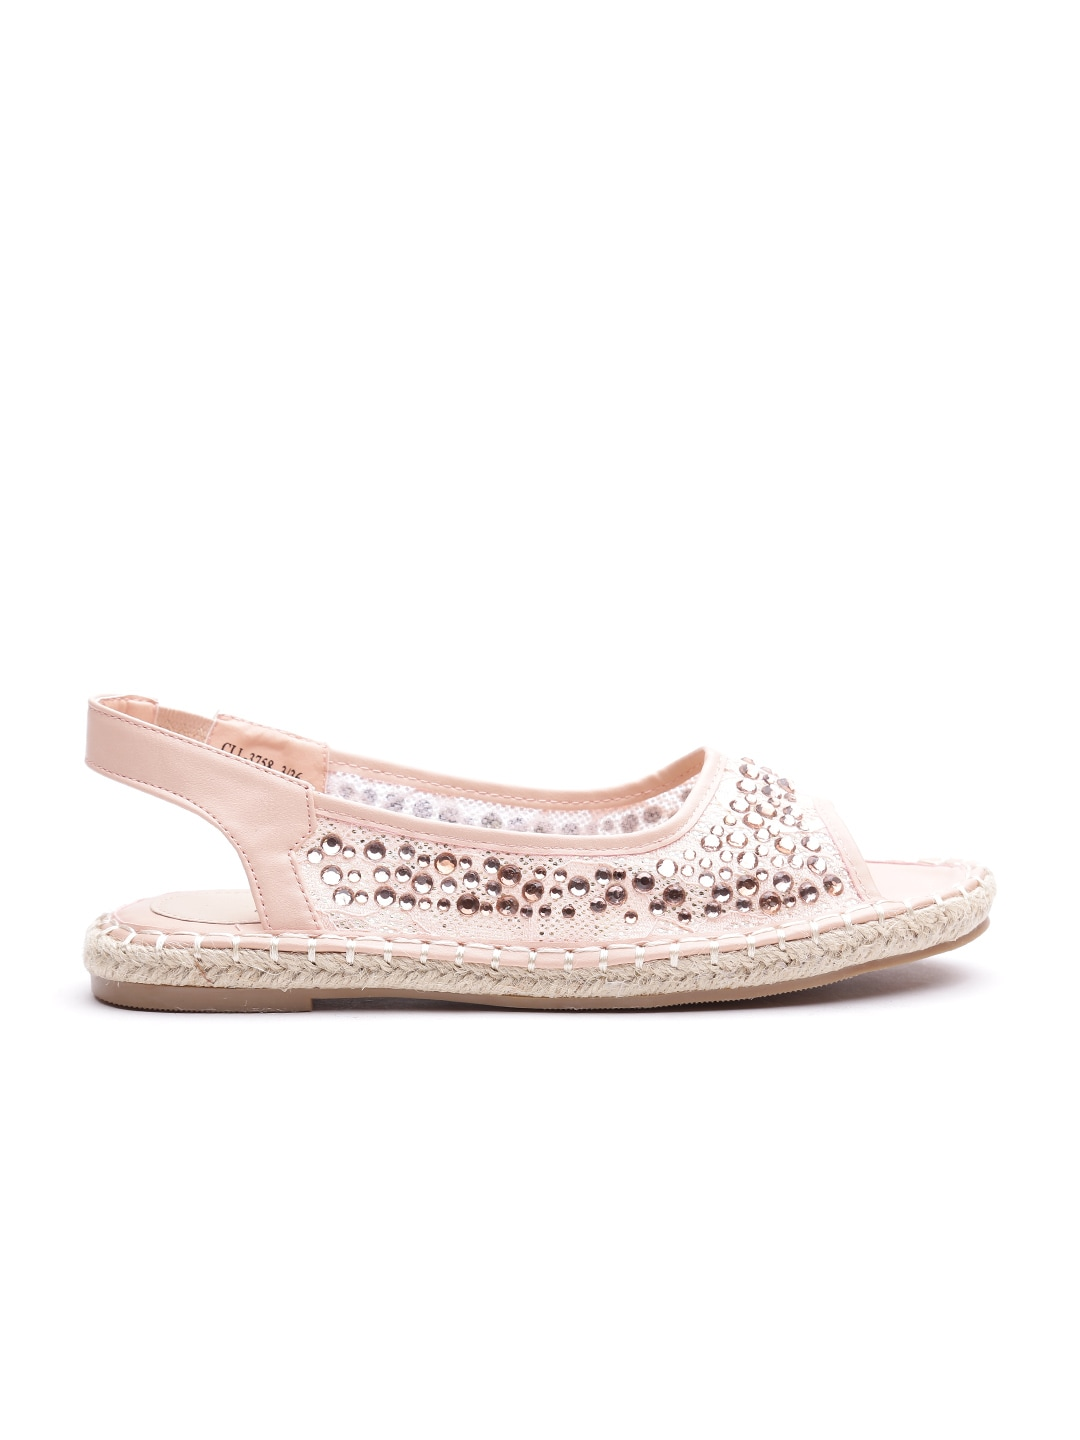 10e26e04102b Casual Shoes For Women - Buy Women s Casual Shoes Online from Myntra